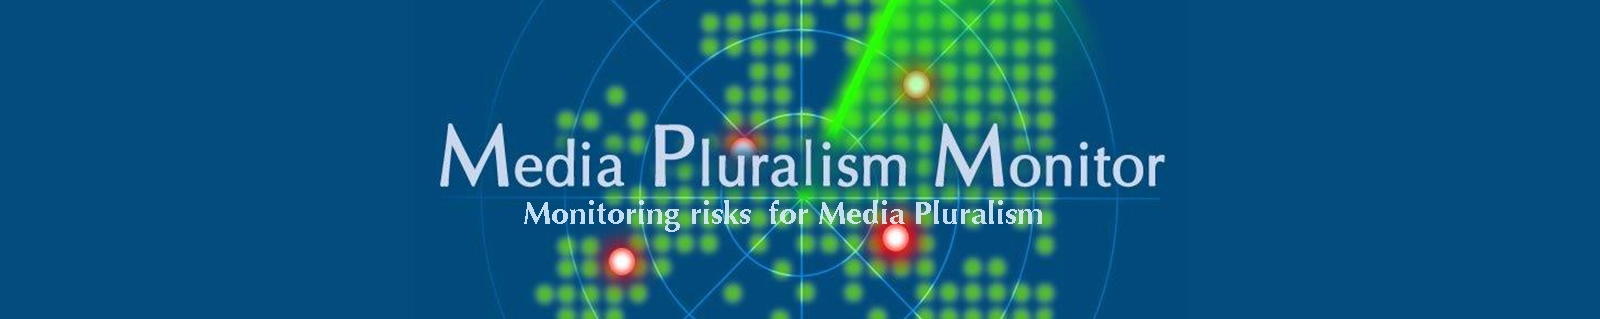 Media Pluralism Monitor 2016 results